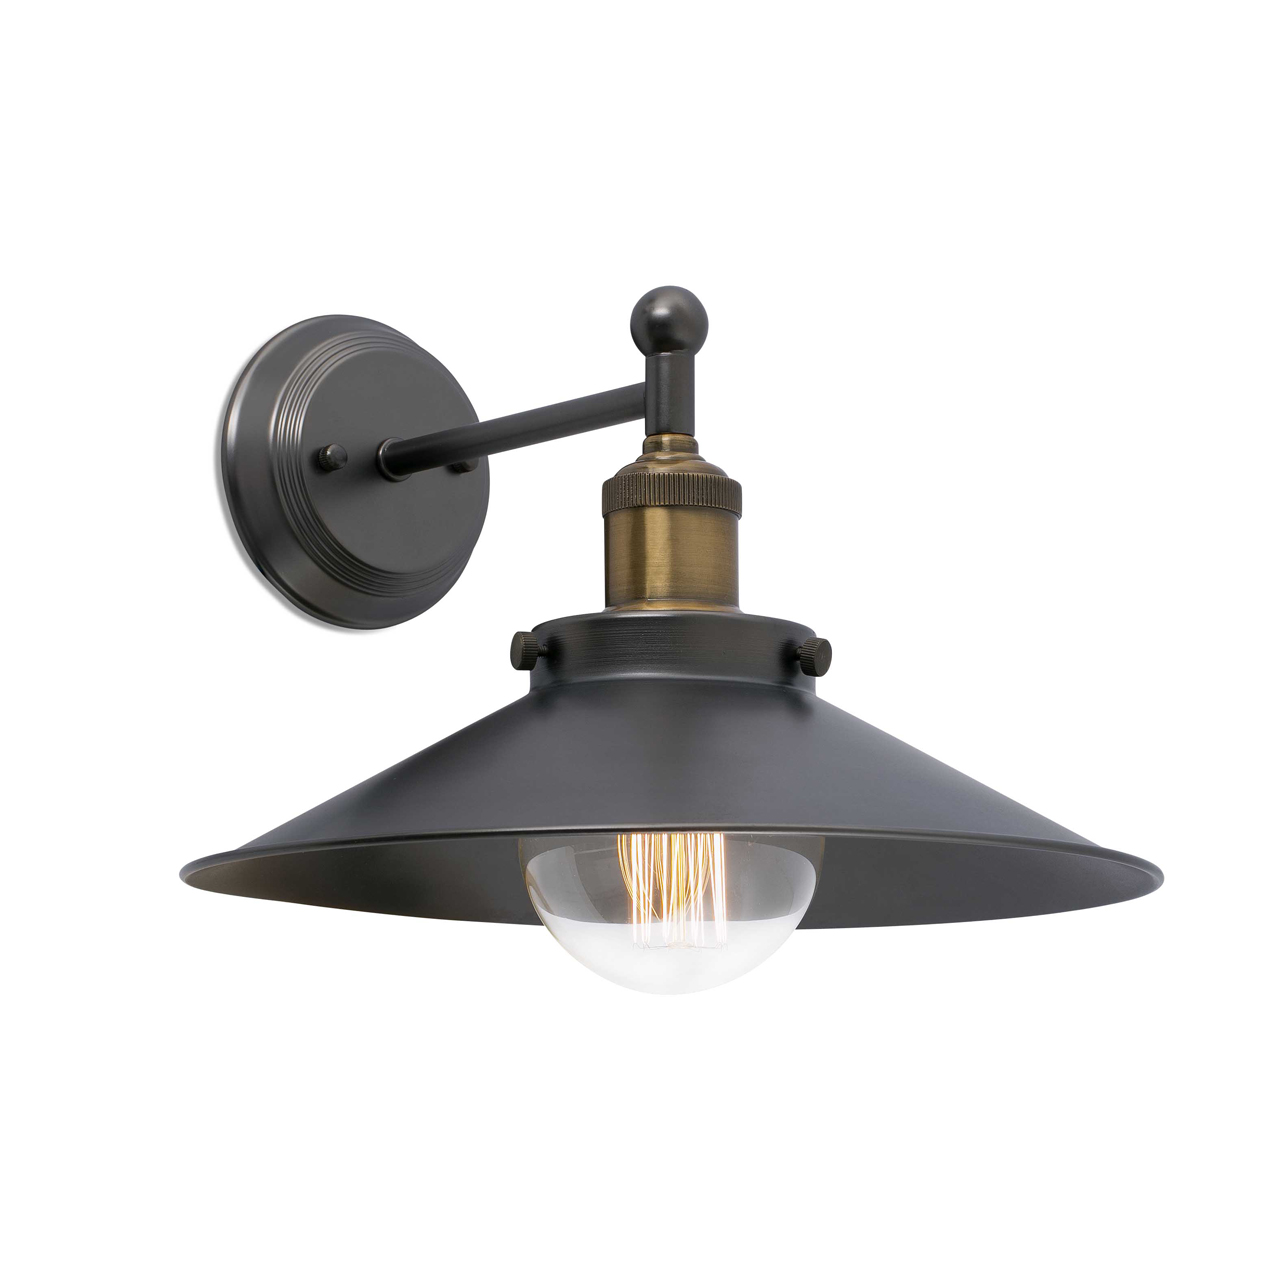 Aplique de pared MARLIN 65133 de Faro